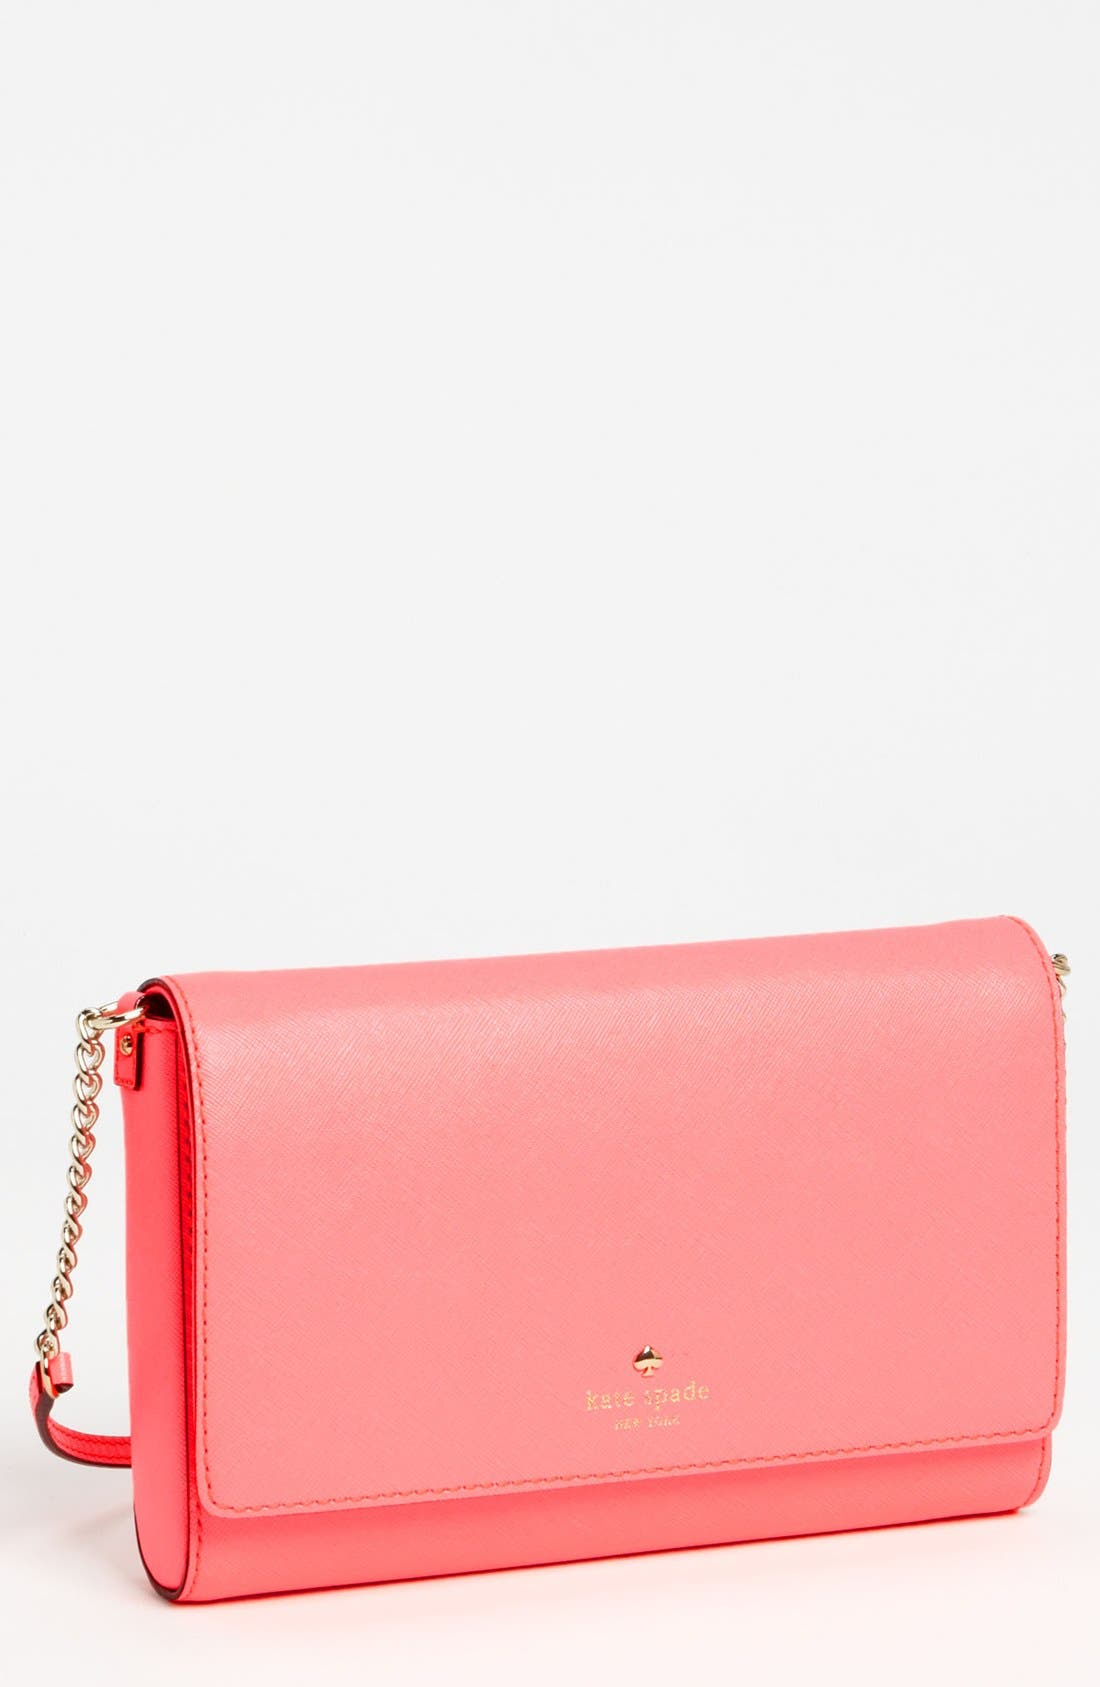 Alternate Image 1 Selected - kate spade new york 'charlotte street - angela' clutch